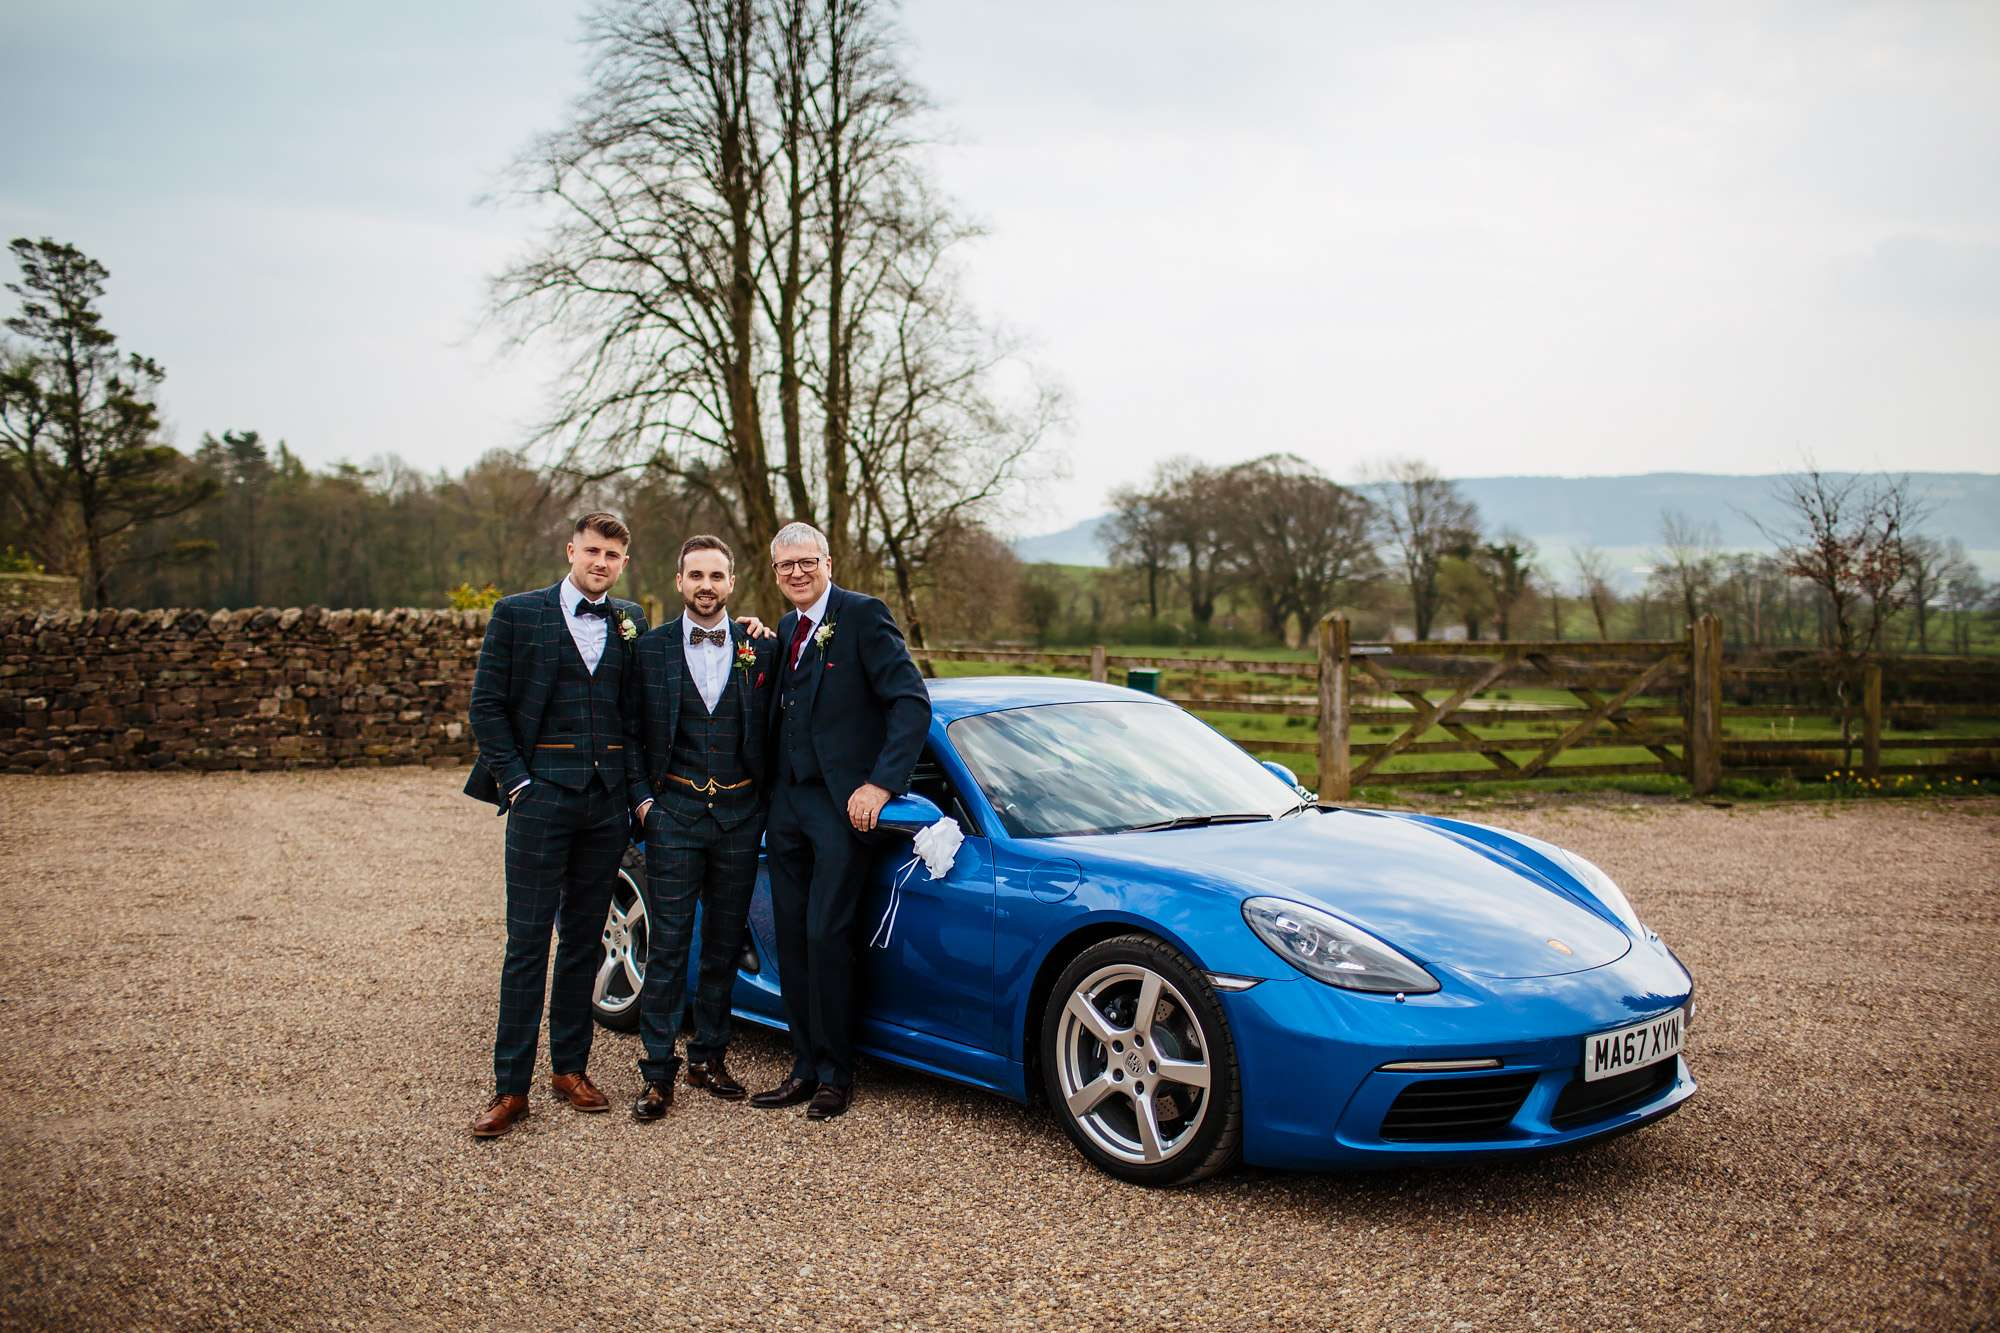 Groom with his Wedding car in Lancashire